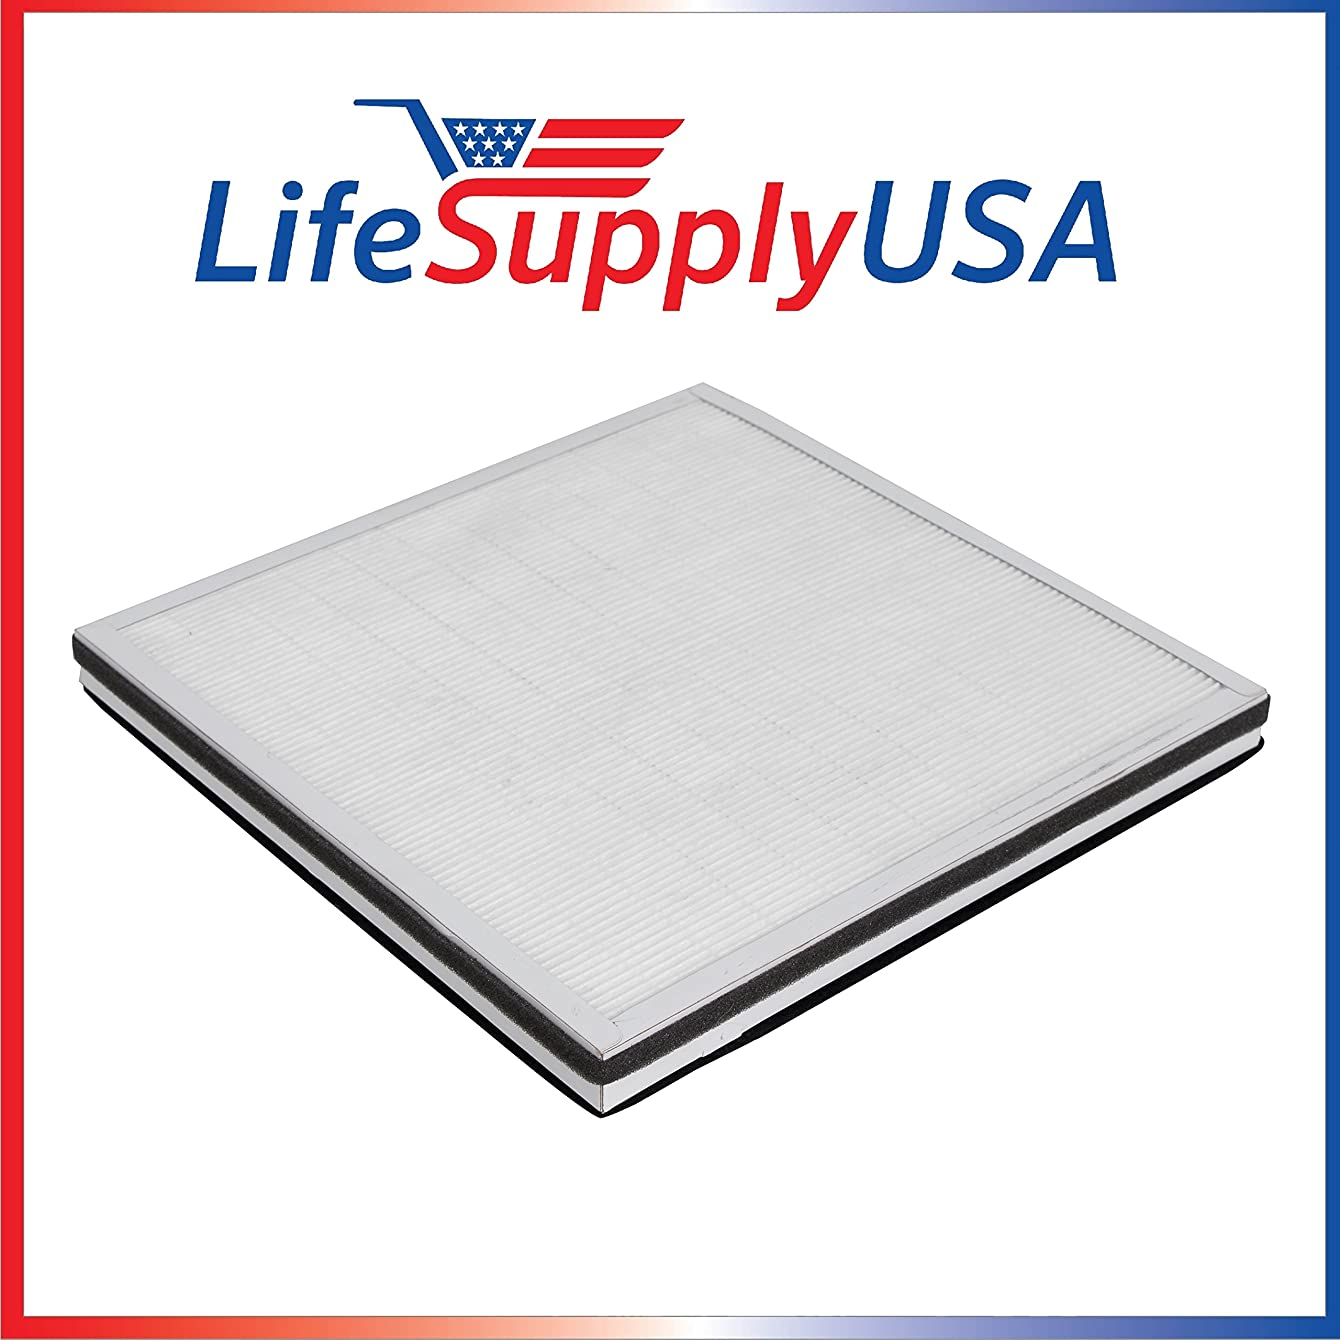 LifeSupplyUSA Replacement Filter for Surround Air MT-8500SF 3 in 1, HEPA, Carbon and Pre-Filter